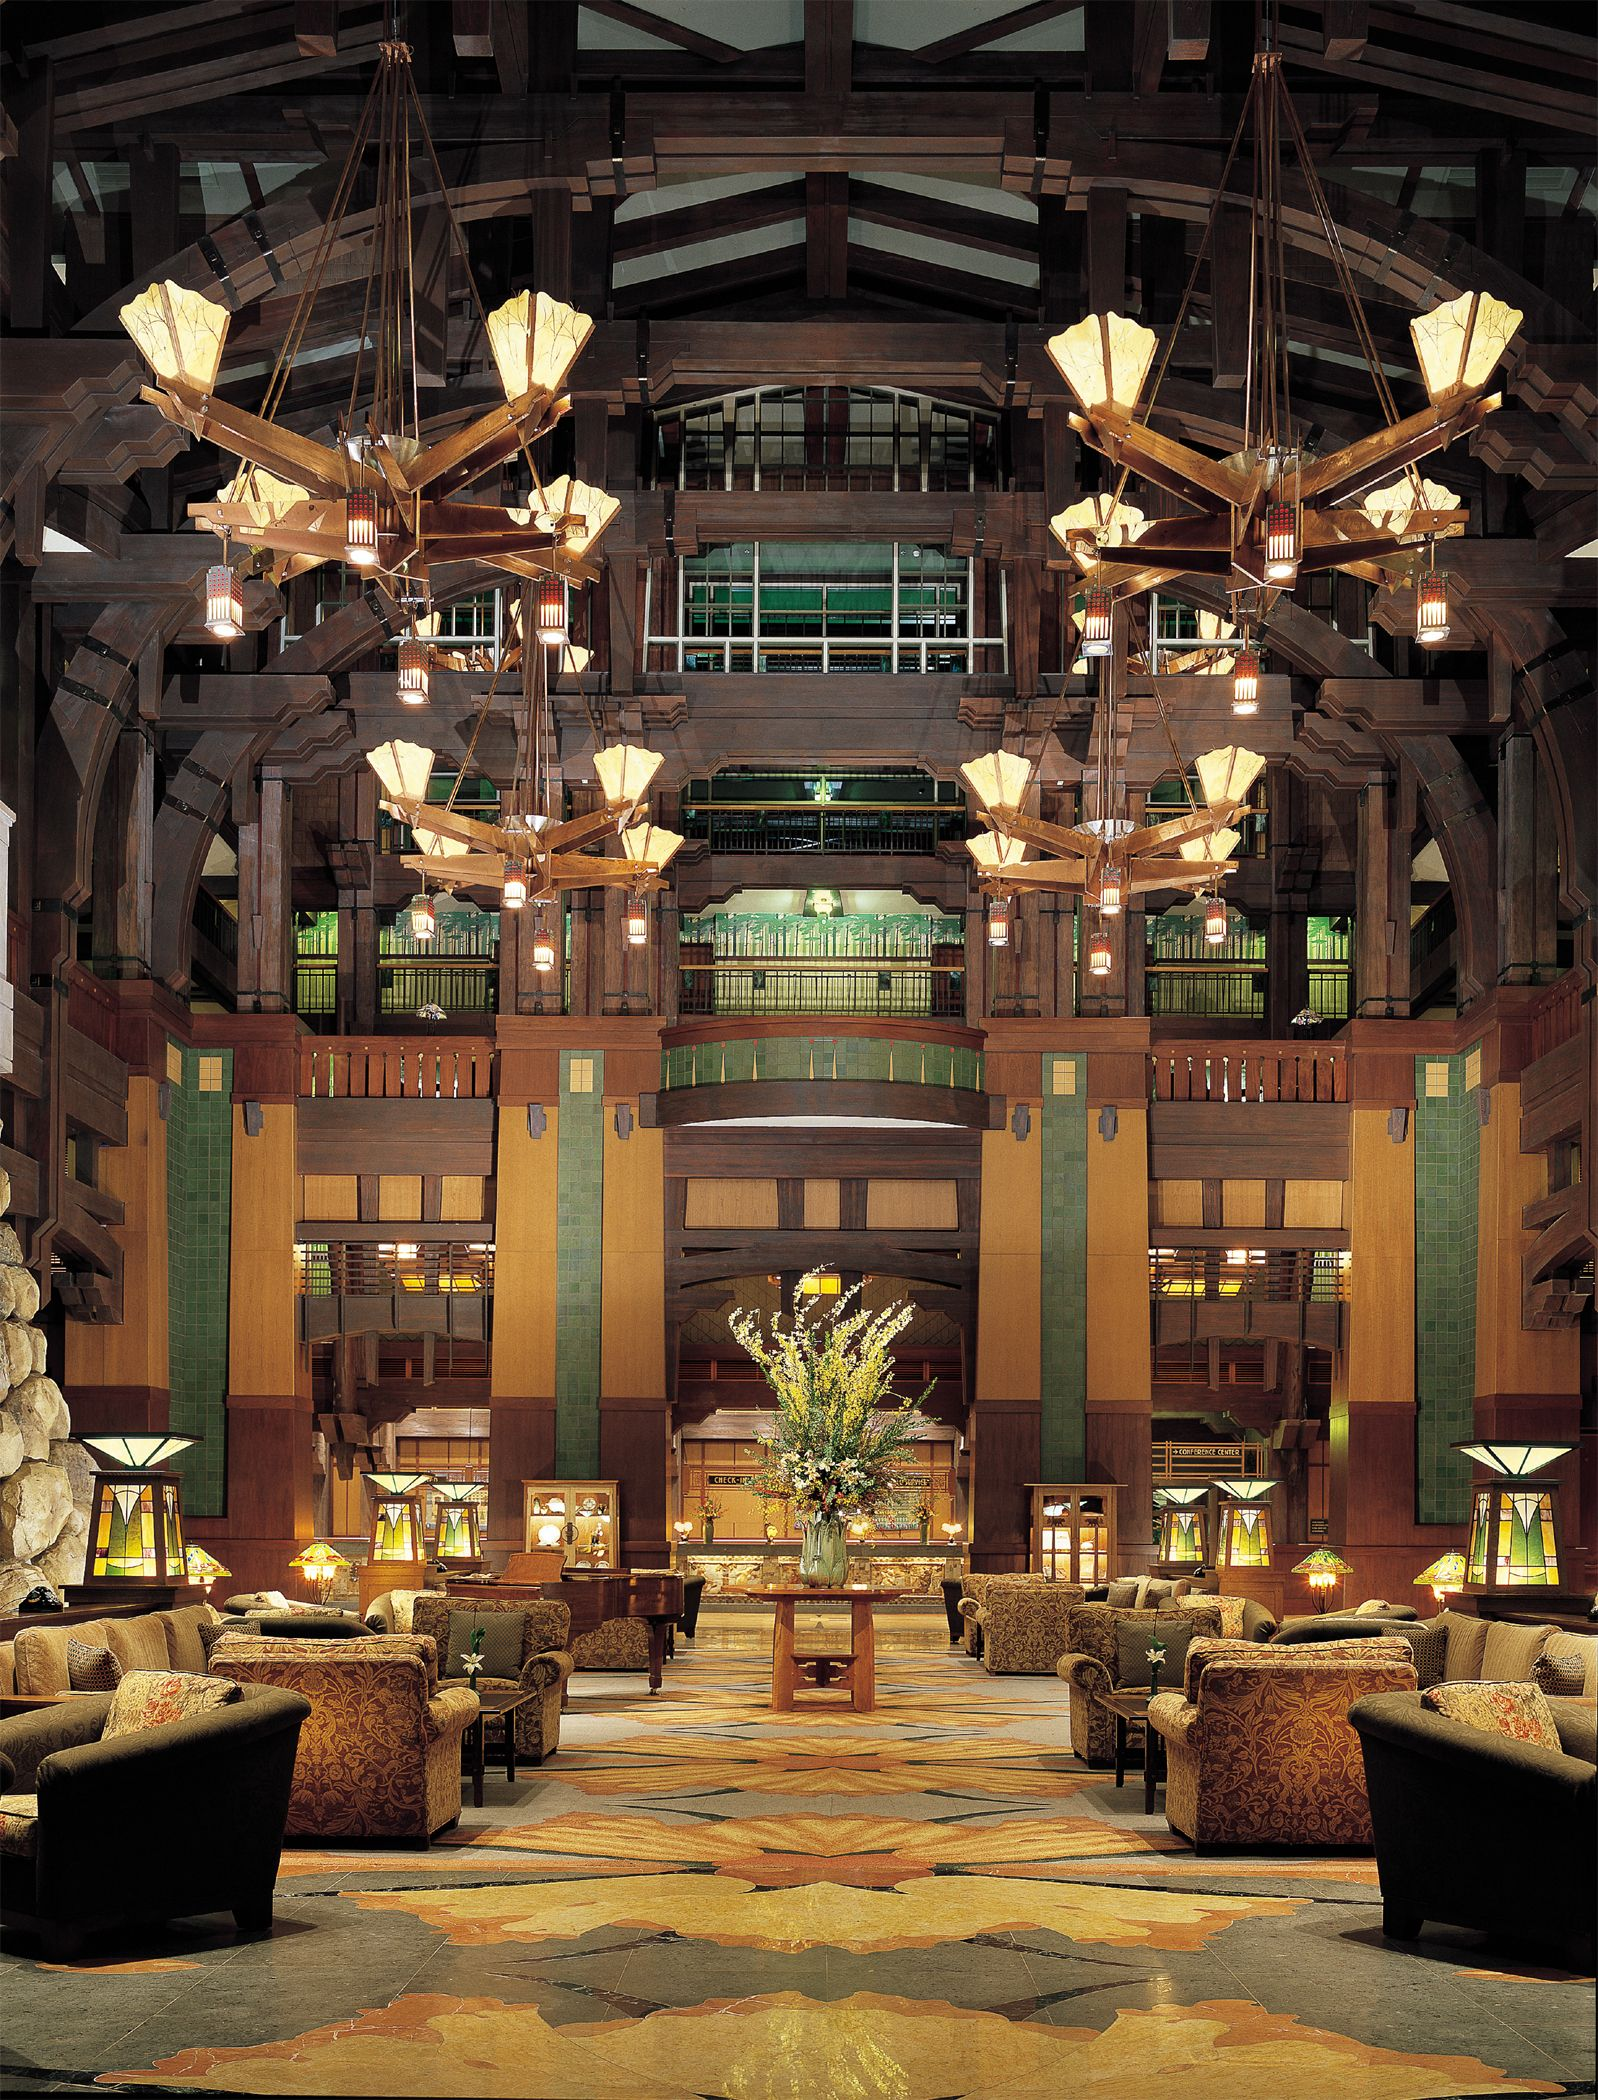 disney's grand californian hotel & spa review | grand californian